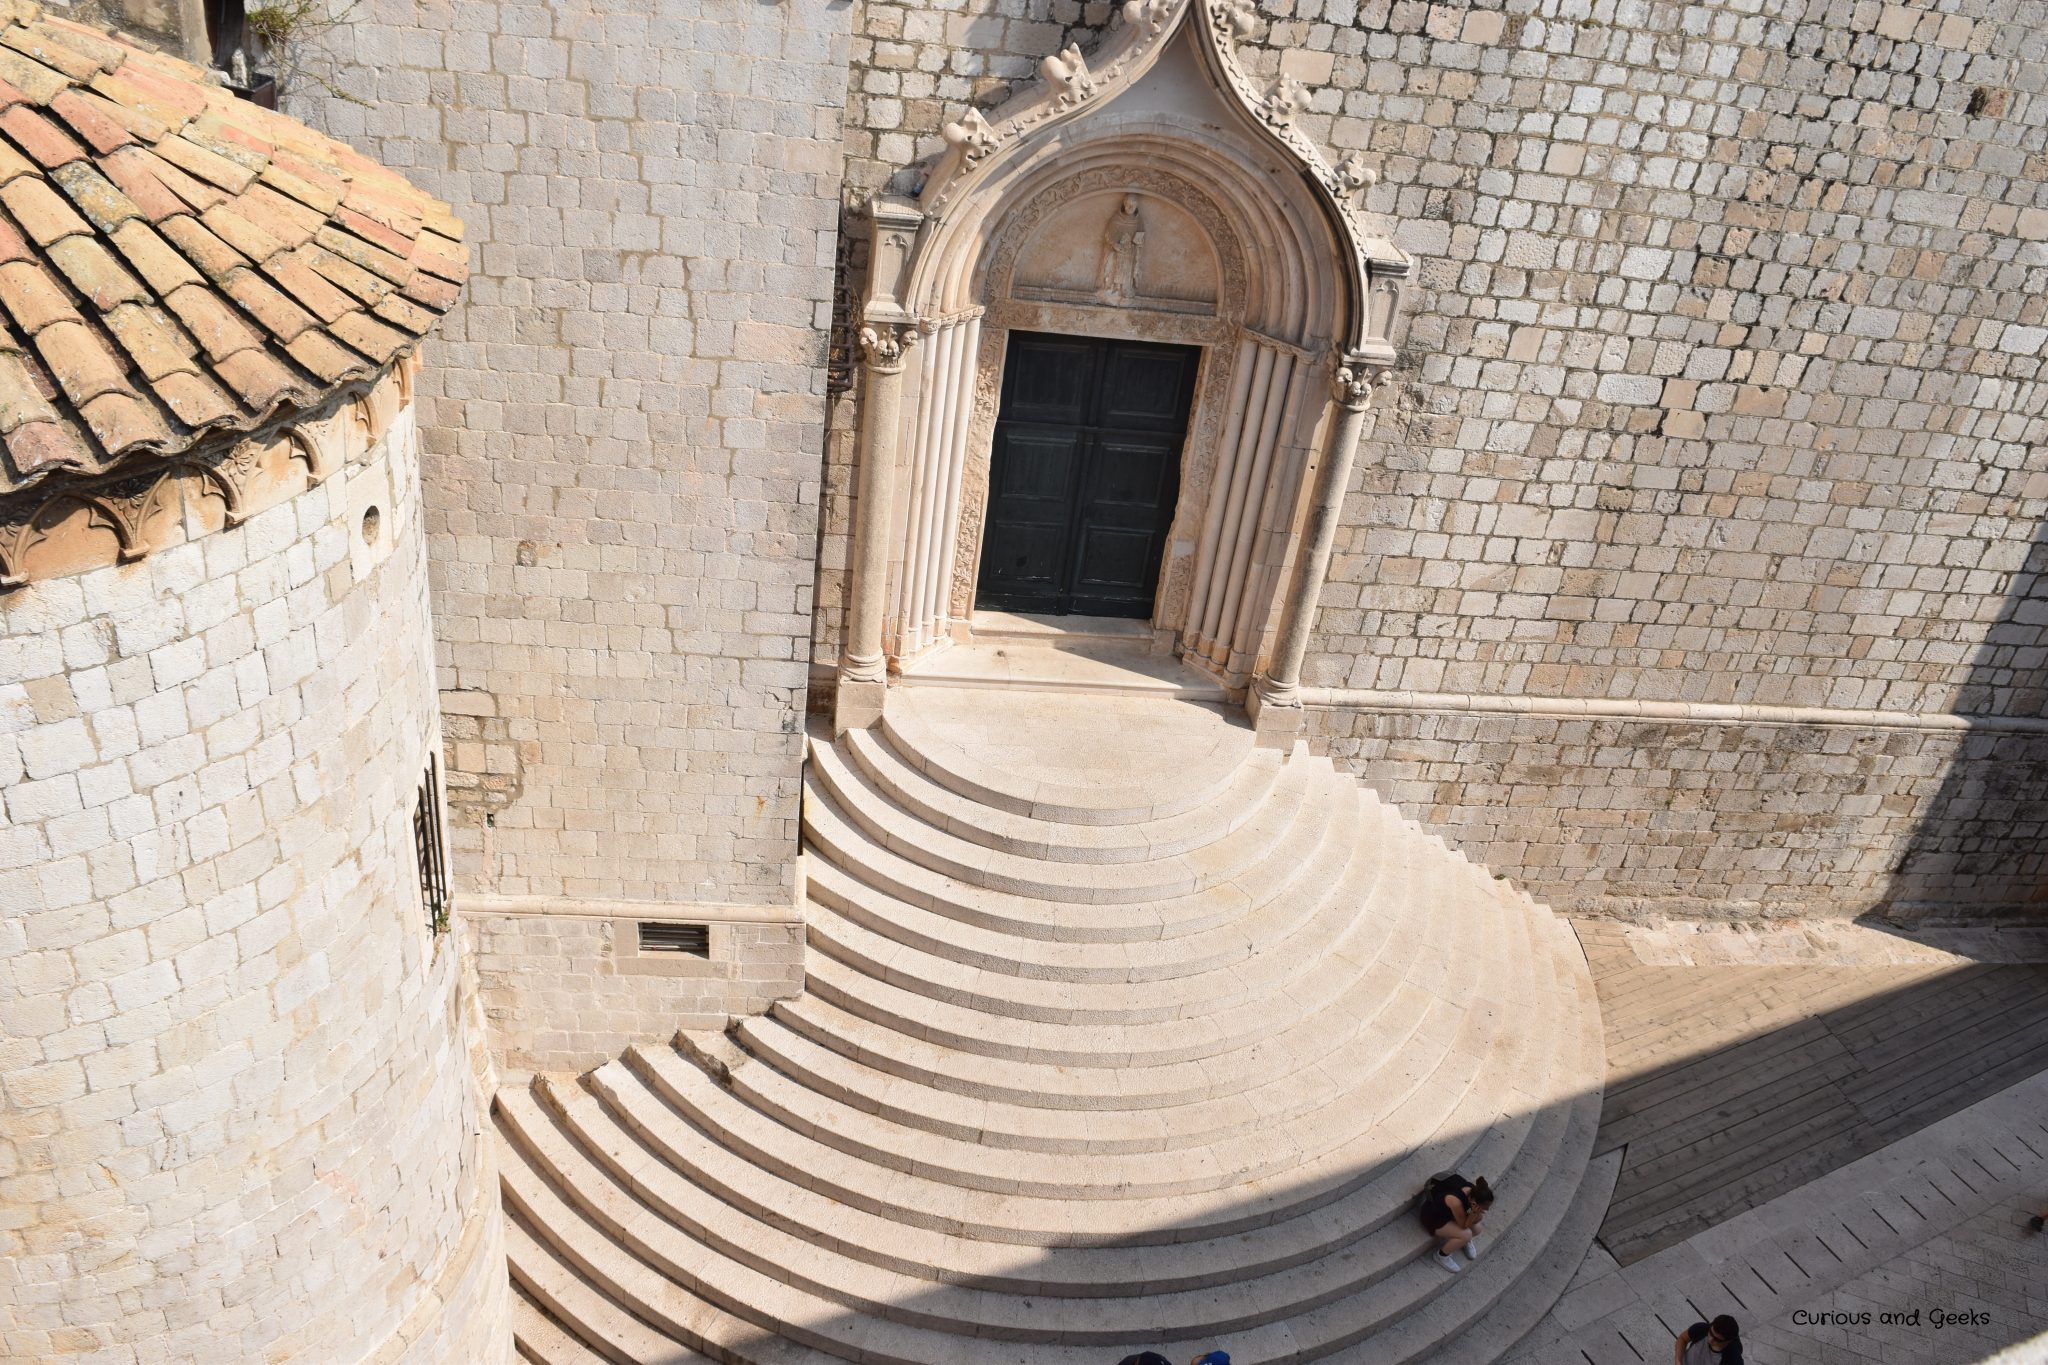 6. Dominican 2 - Game of Thrones filming locations in Dubrovnik